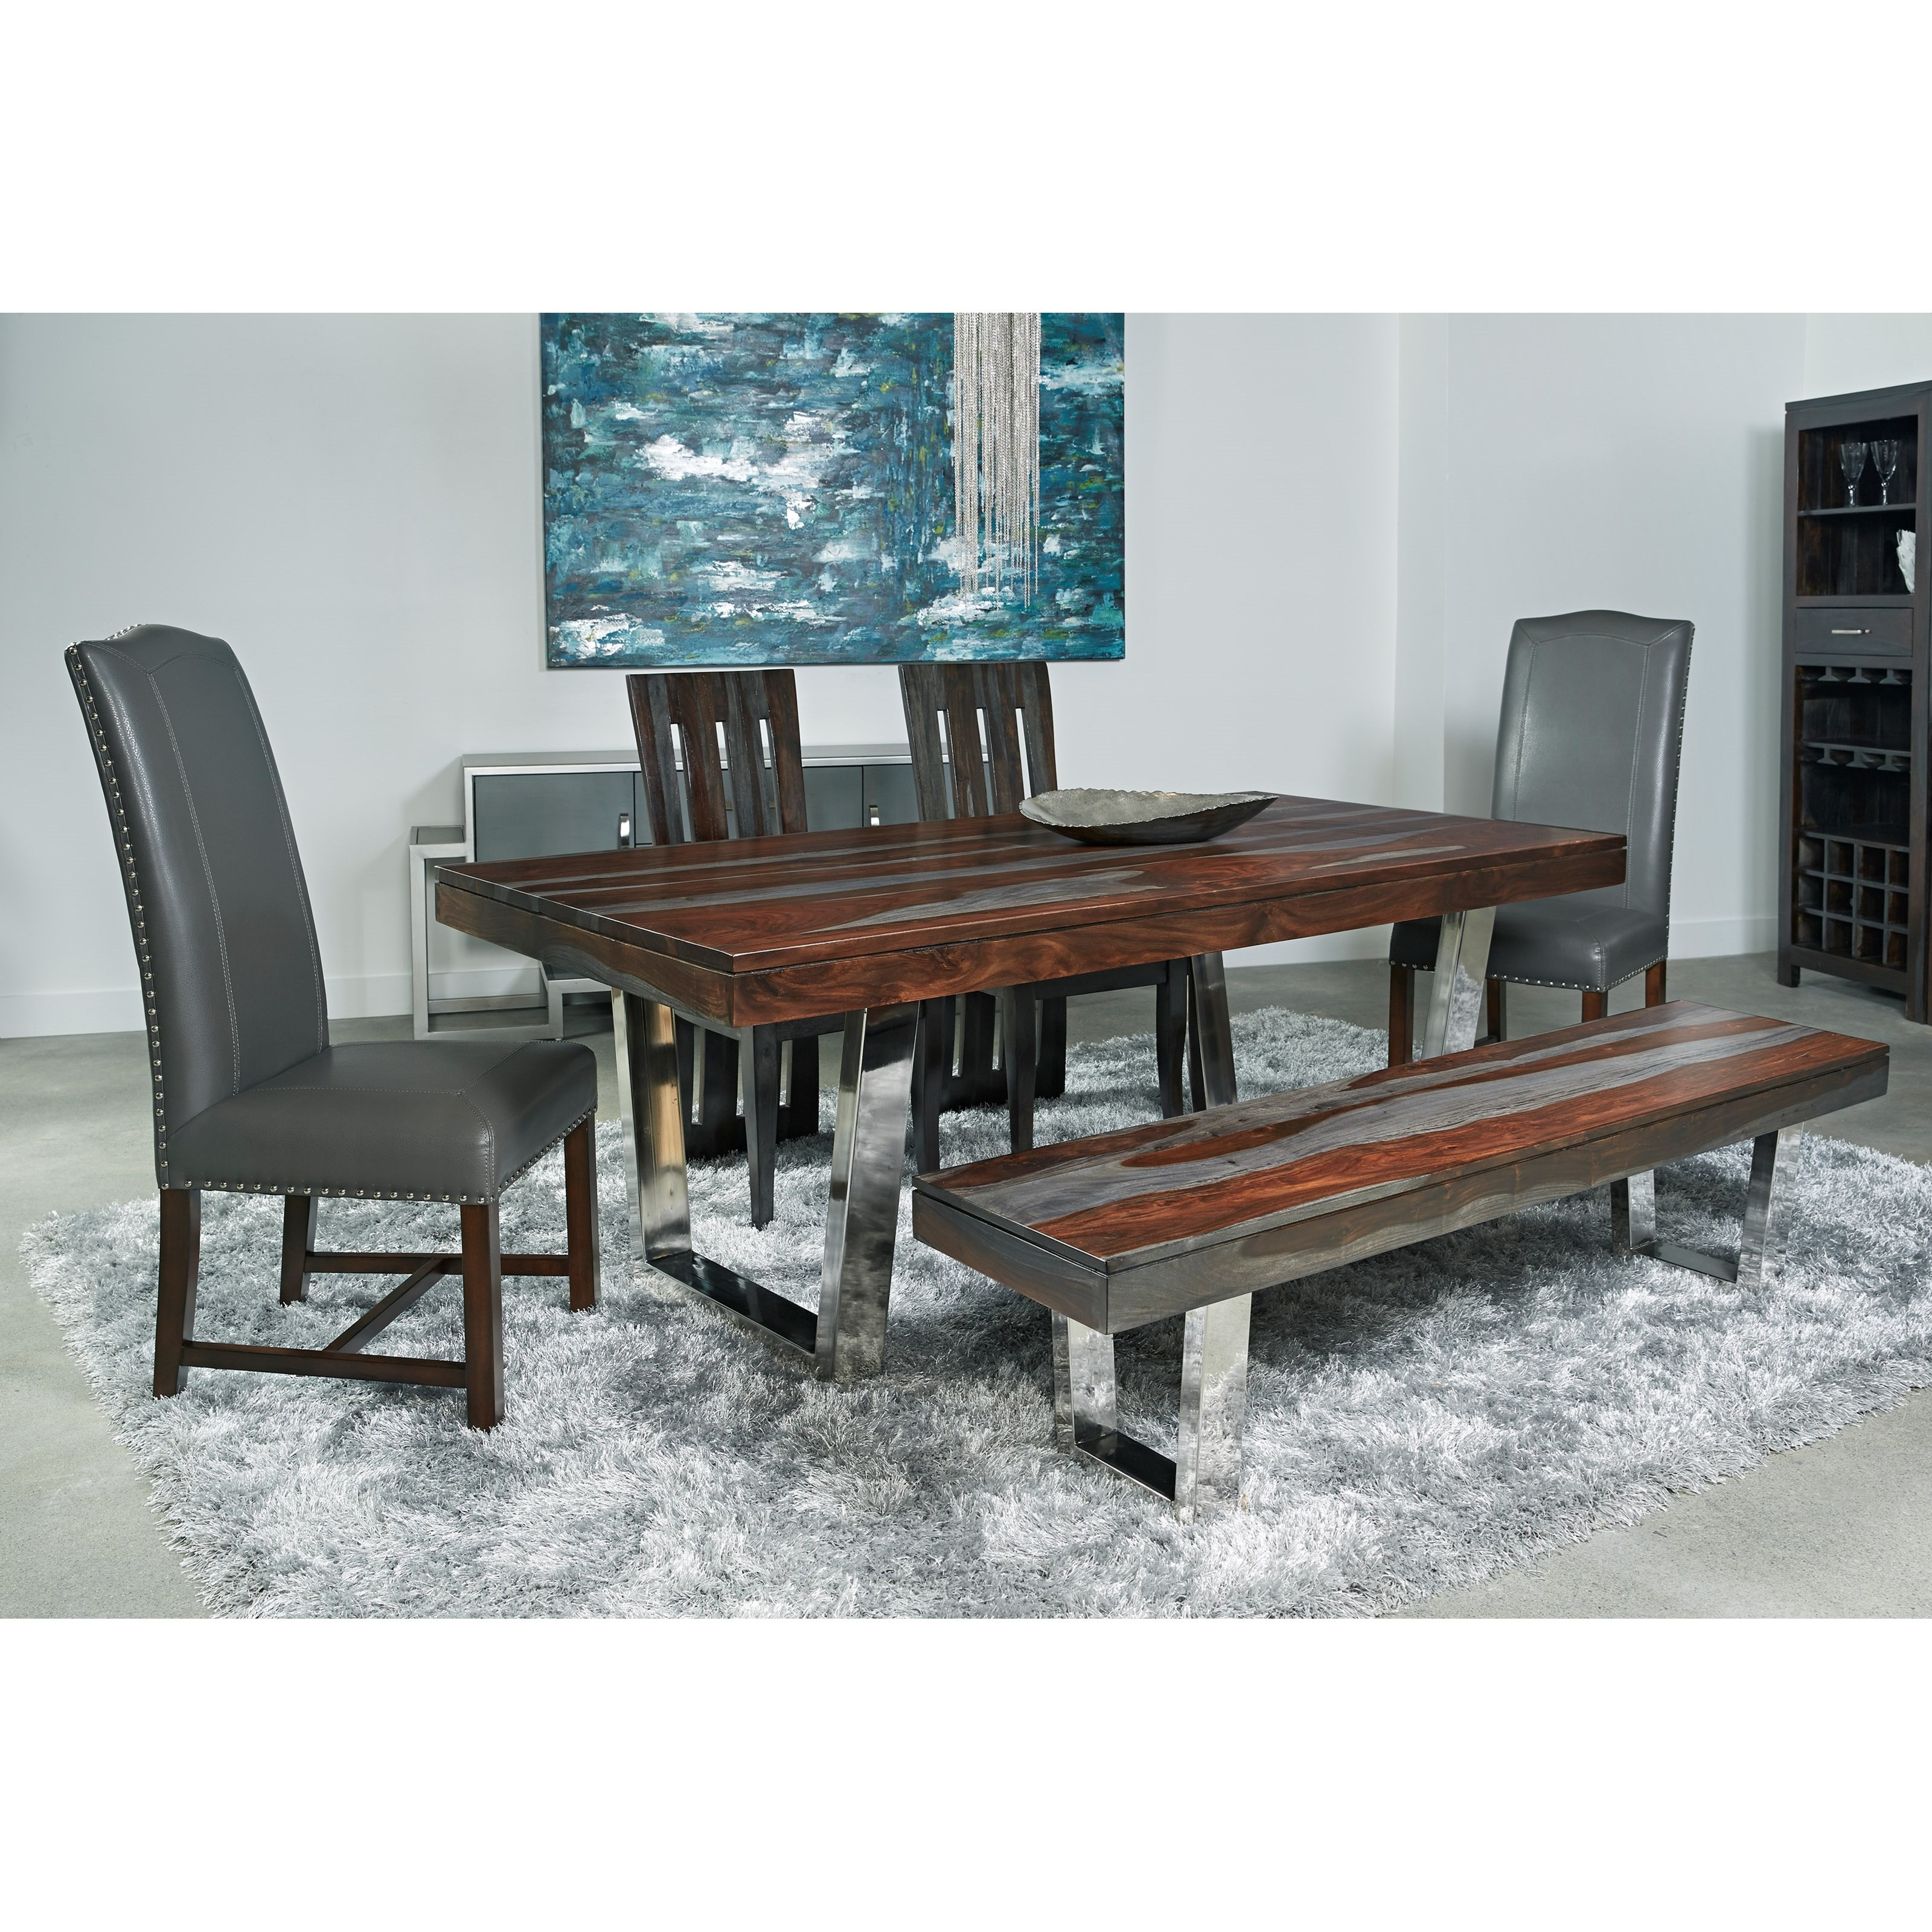 Coast to Coast Imports Cosmopolitan Table & Chair Set - Item Number: 9345 Dining Room Group 2